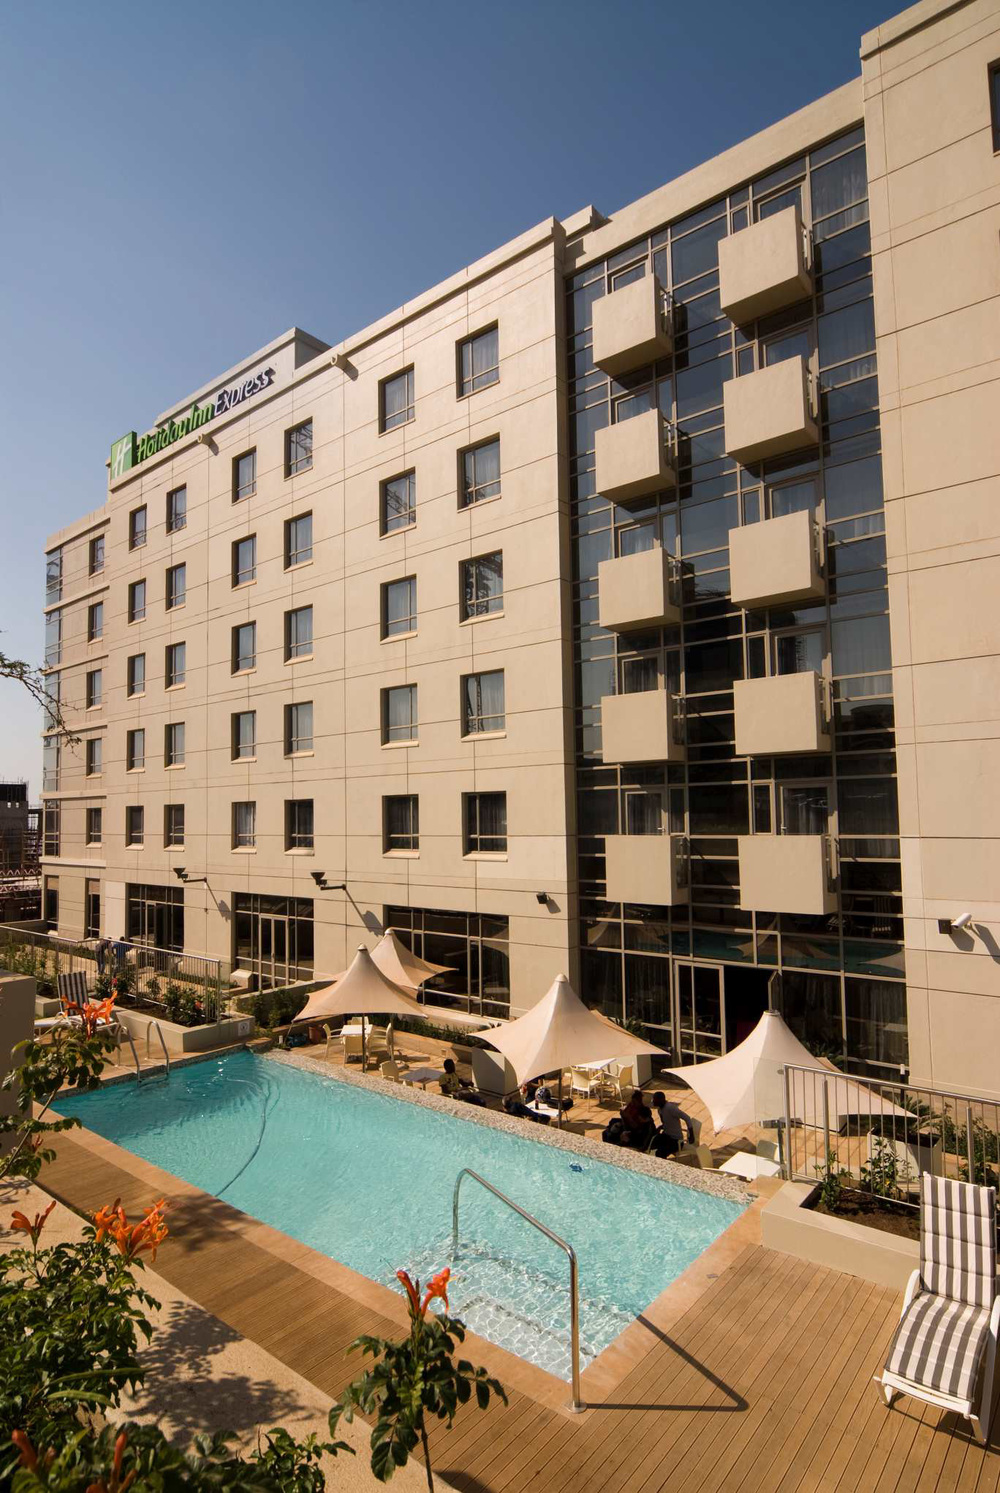 hotels-holiday inn express umhlanga2.jpg